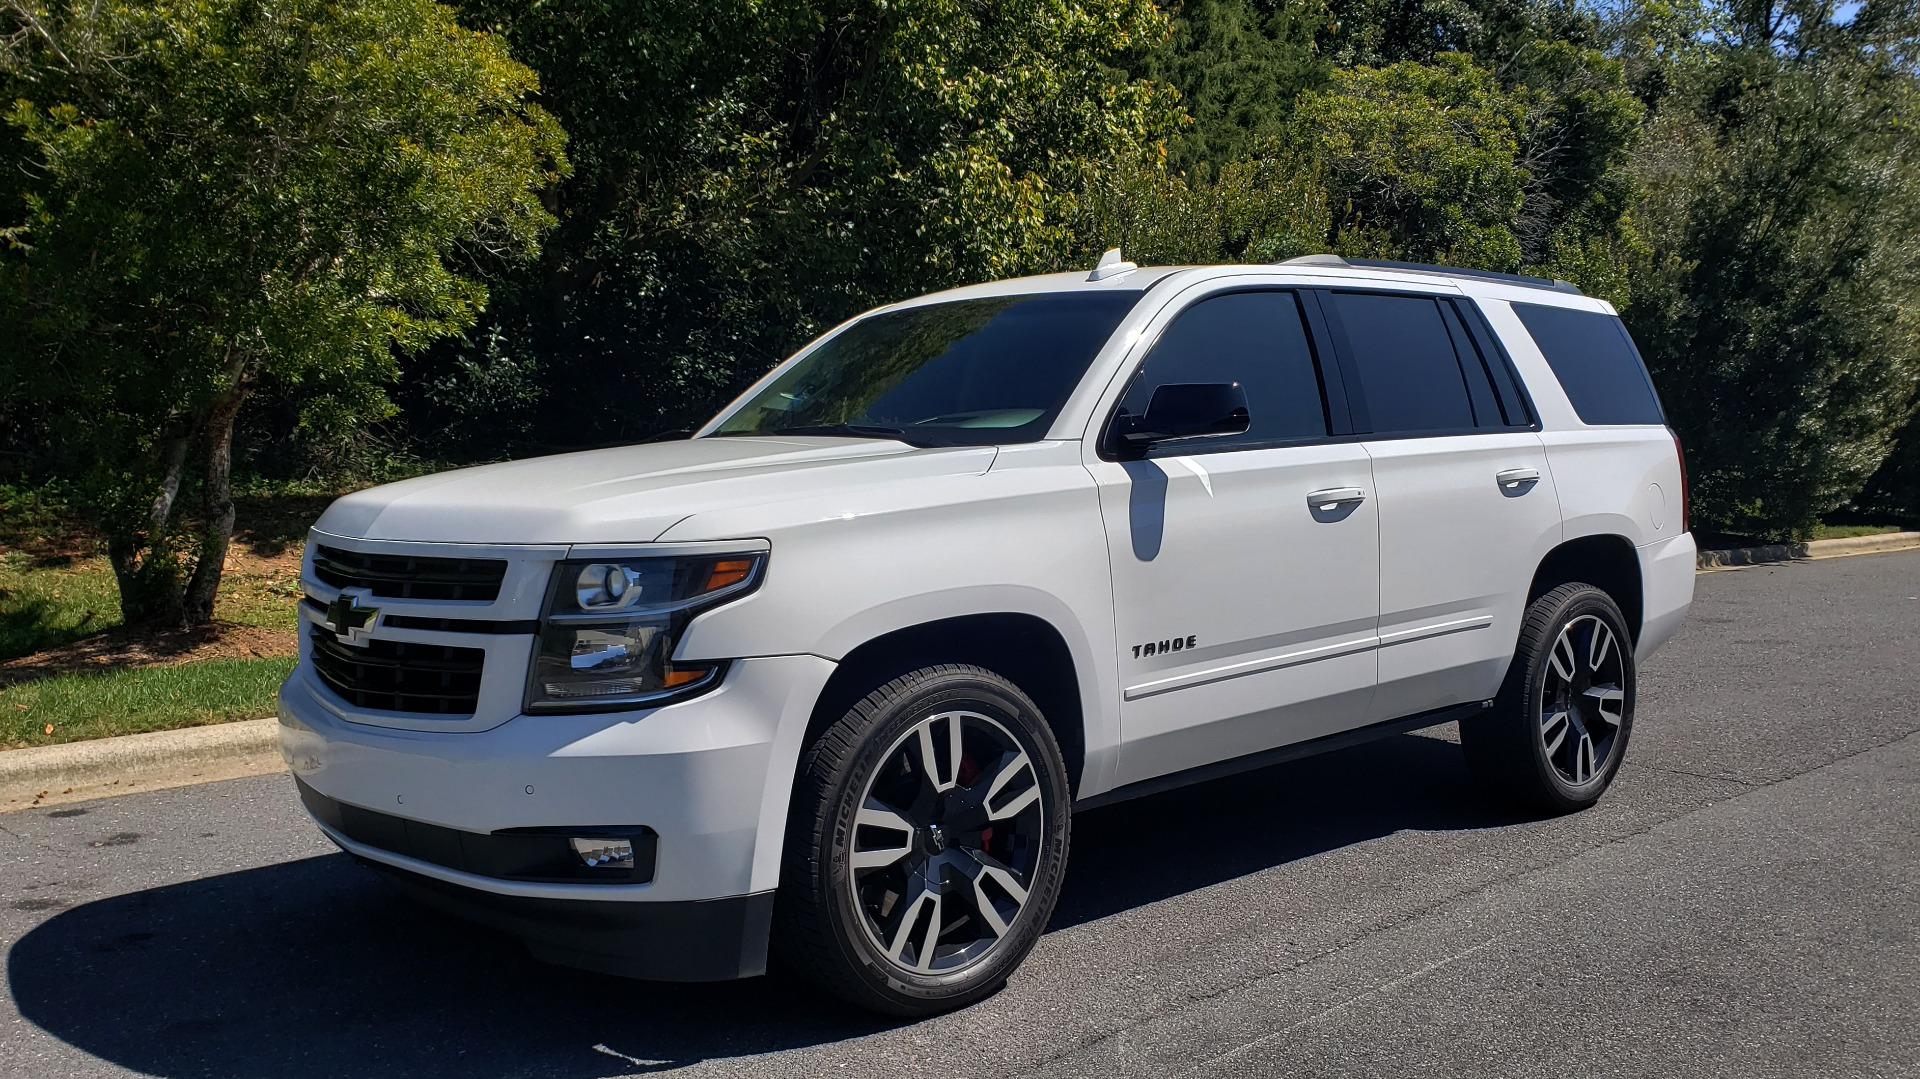 Used 2018 Chevrolet TAHOE PREMIER 4WD / 6.2L V8 / NAV / SUNROOF / ENT / BOSE / 3-ROW / REARVIEW for sale Sold at Formula Imports in Charlotte NC 28227 7